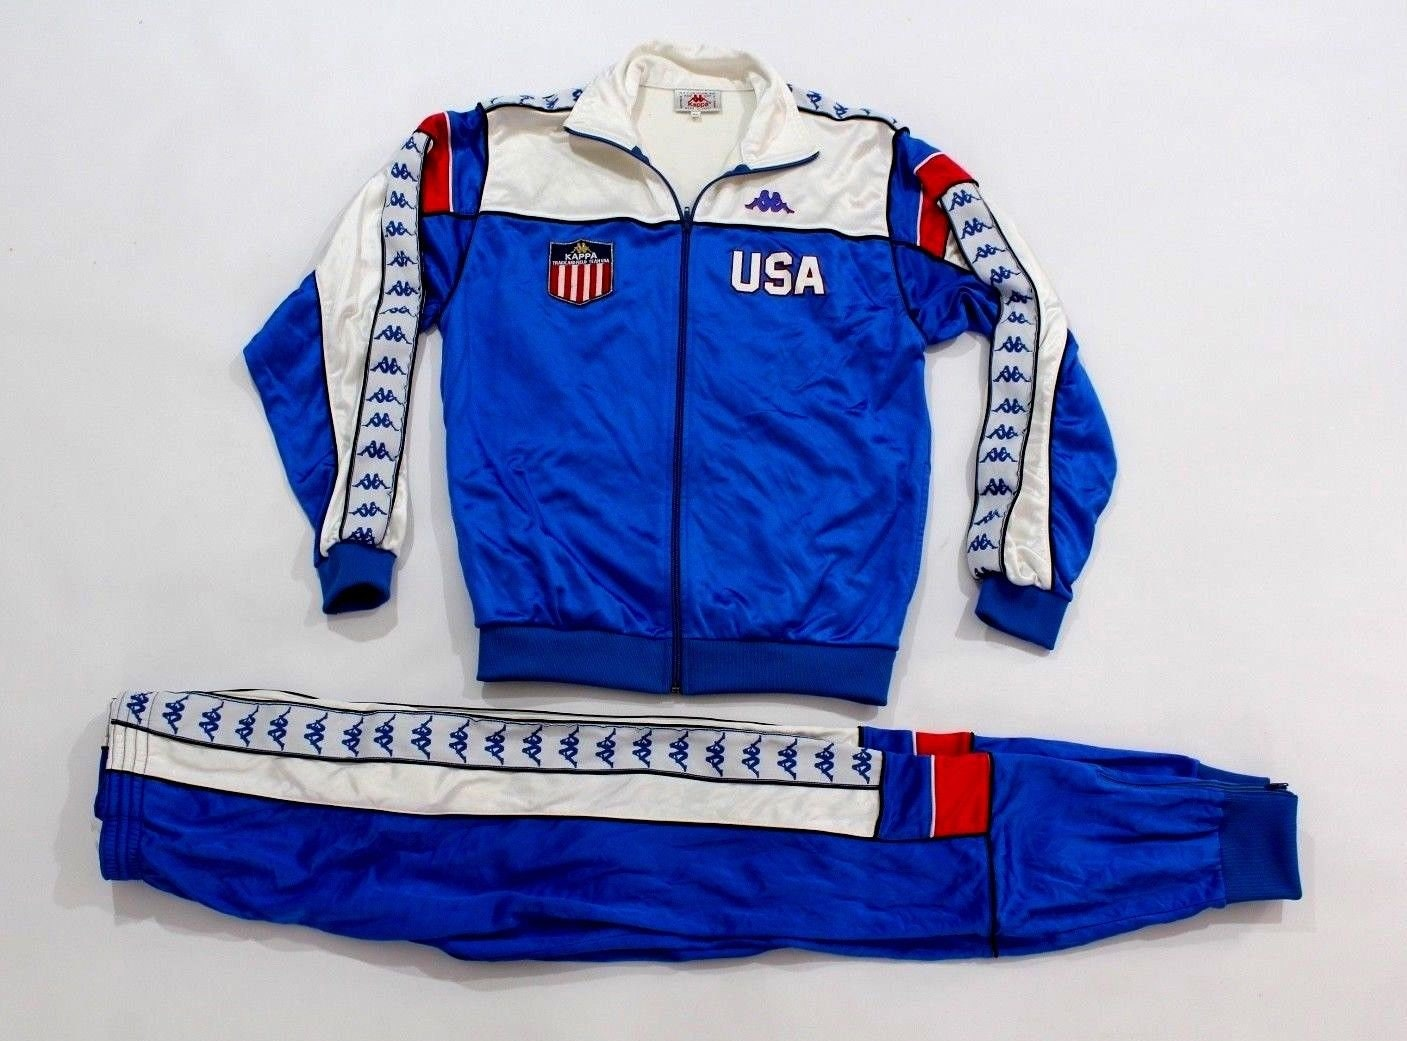 a1100ca3 80s Kappa 1984 Olympics USA Track and Field Athlete Worn Warm Up Suit  Jacket Joggers Mens Medium Blue, Vintage Kappa Jacket, 80s Kappa Pants